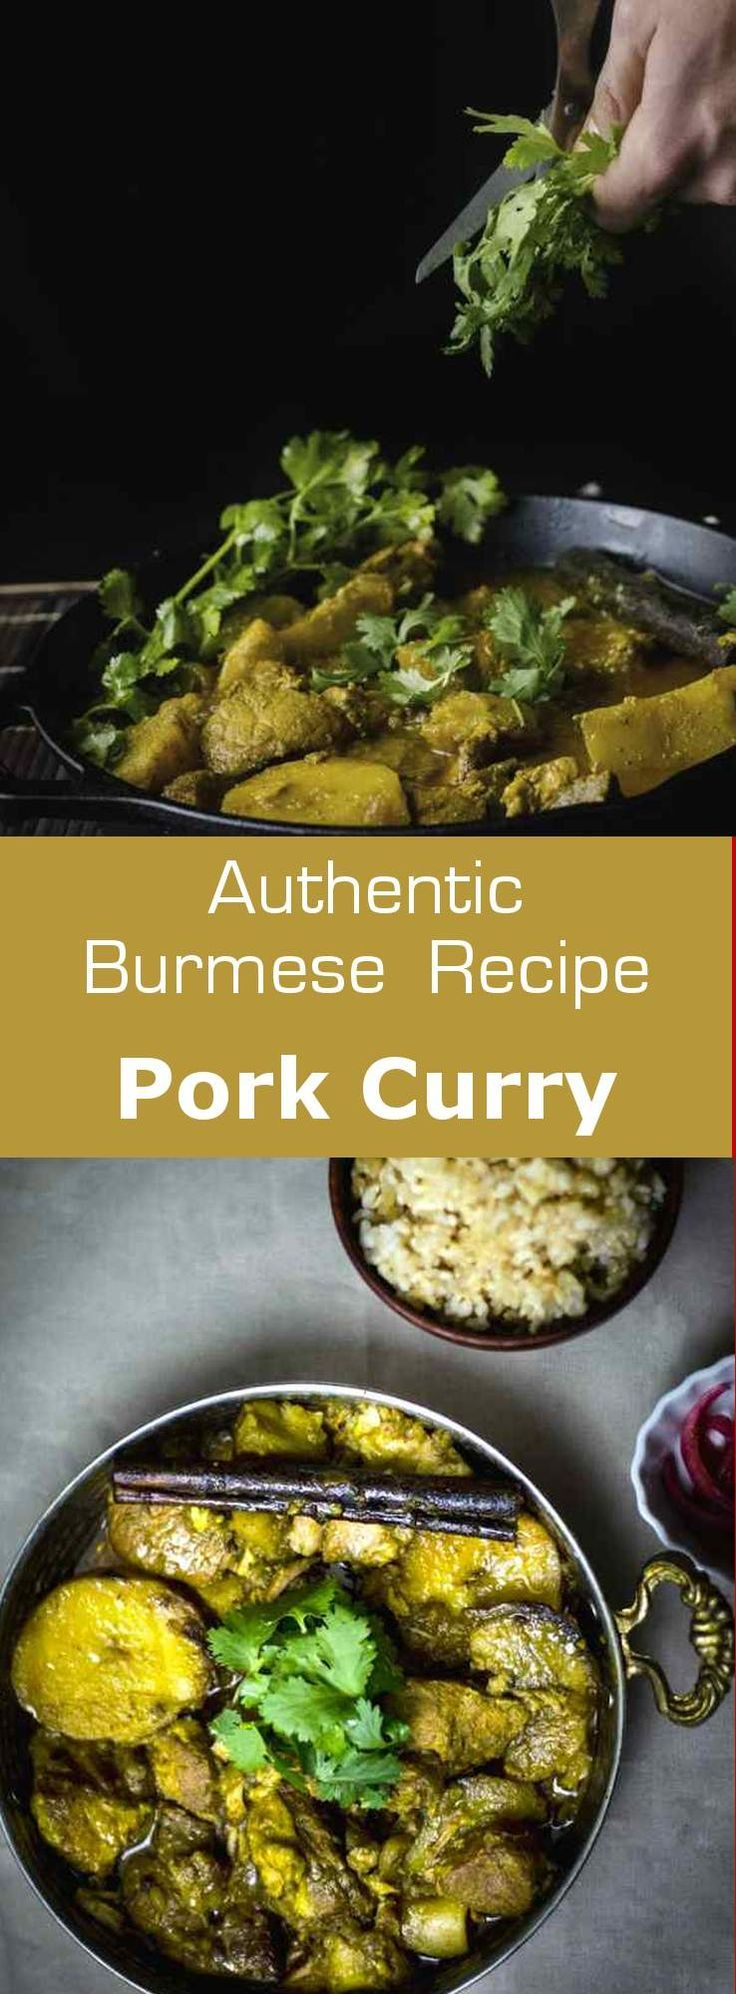 Pork curry is a luxurious Burmese dish that is typically served with rice and sour salads, in special occasions like weddings and novitiation ceremonies. #christmas #burma #myanmar #196flavors